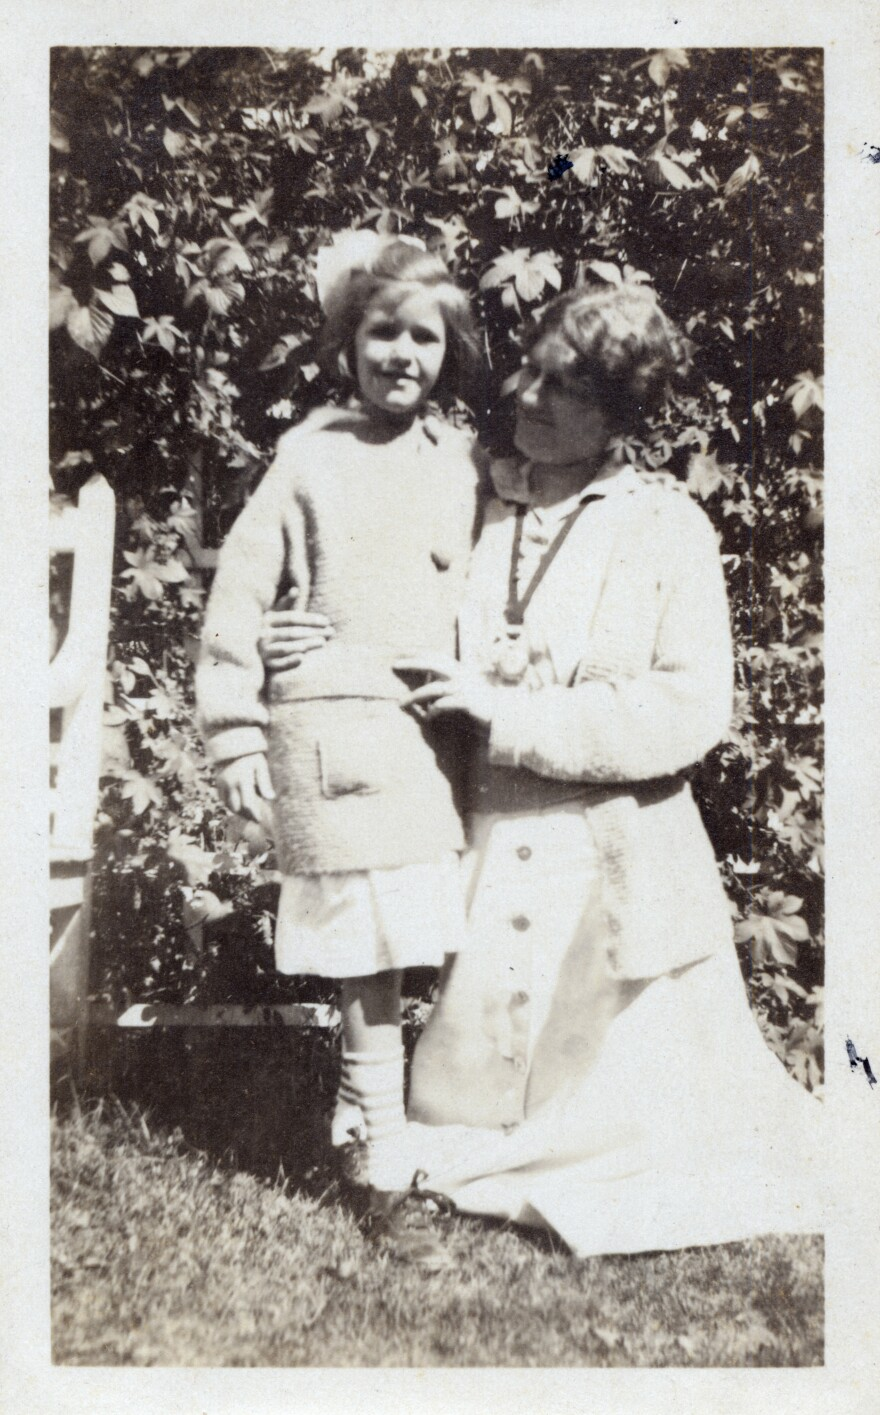 Nancy Hale with her mother, Lilian Westcott Hale, at their home in Dedham Massachusetts in October 1915.